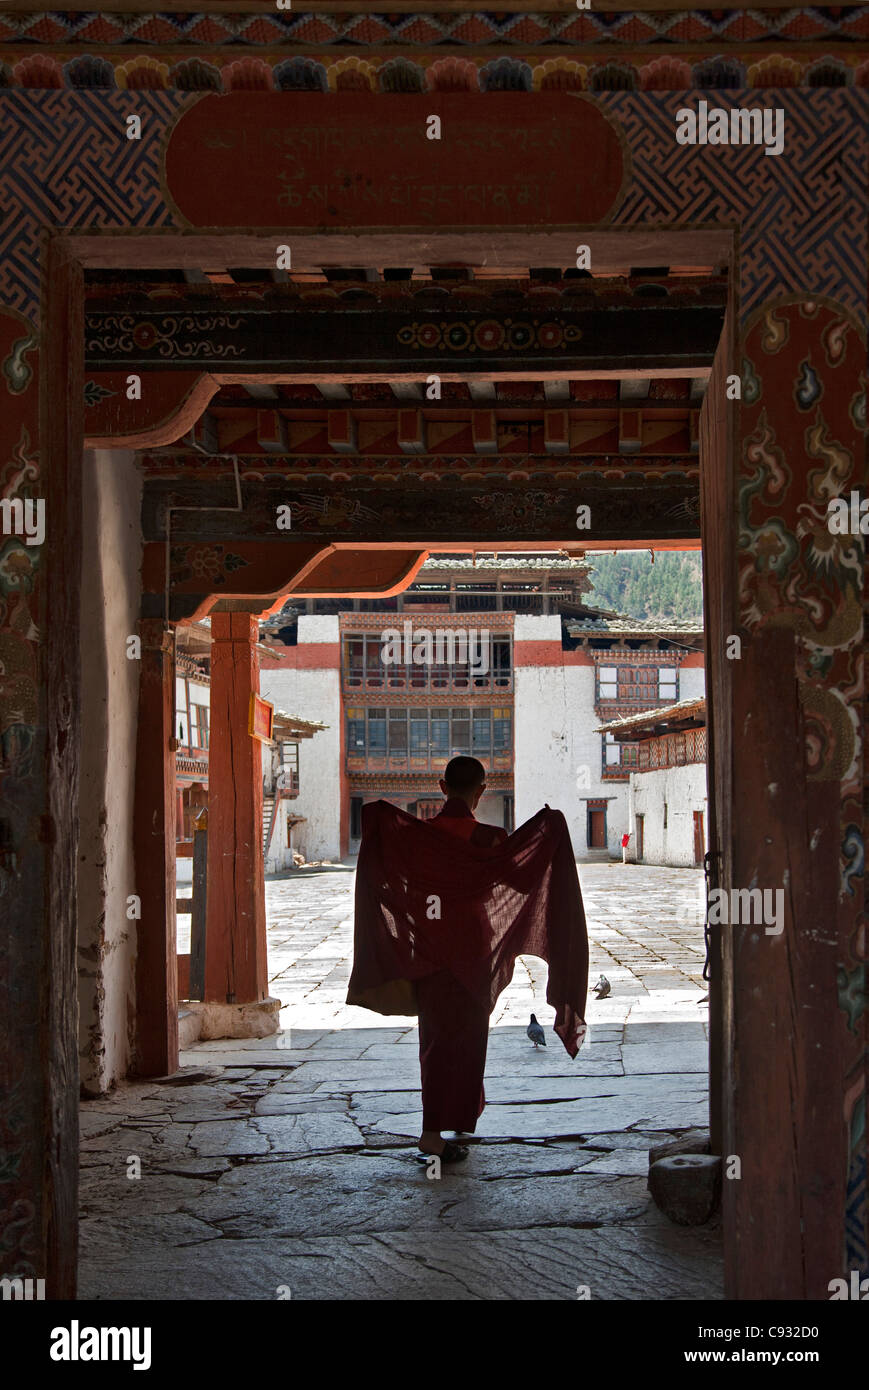 A monk adjusts his red robes as he enters the main courtyard of Wangdue Phodrang Dzong (fortress). - Stock Image